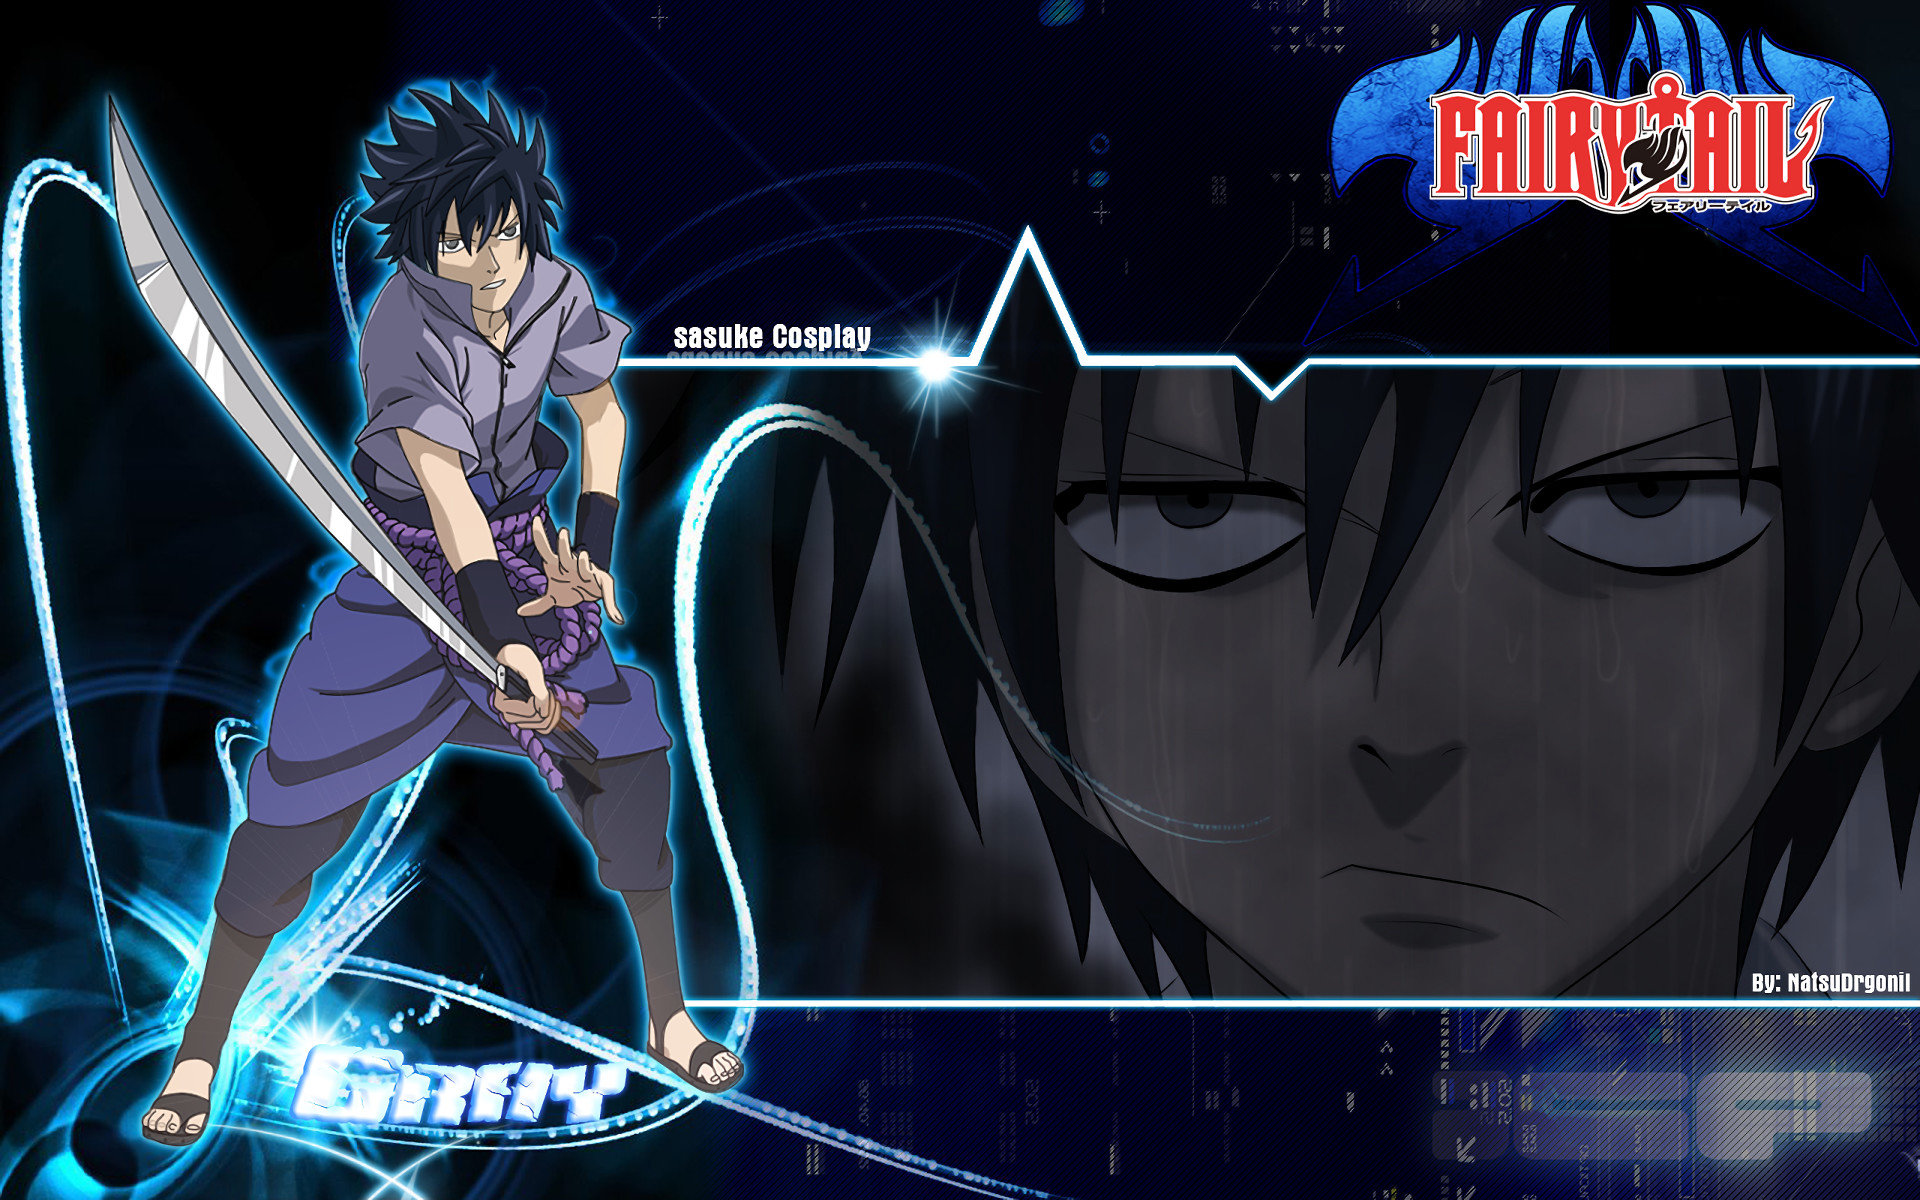 Download hd 1920x1200 Fairy Tail PC background ID:41124 for free